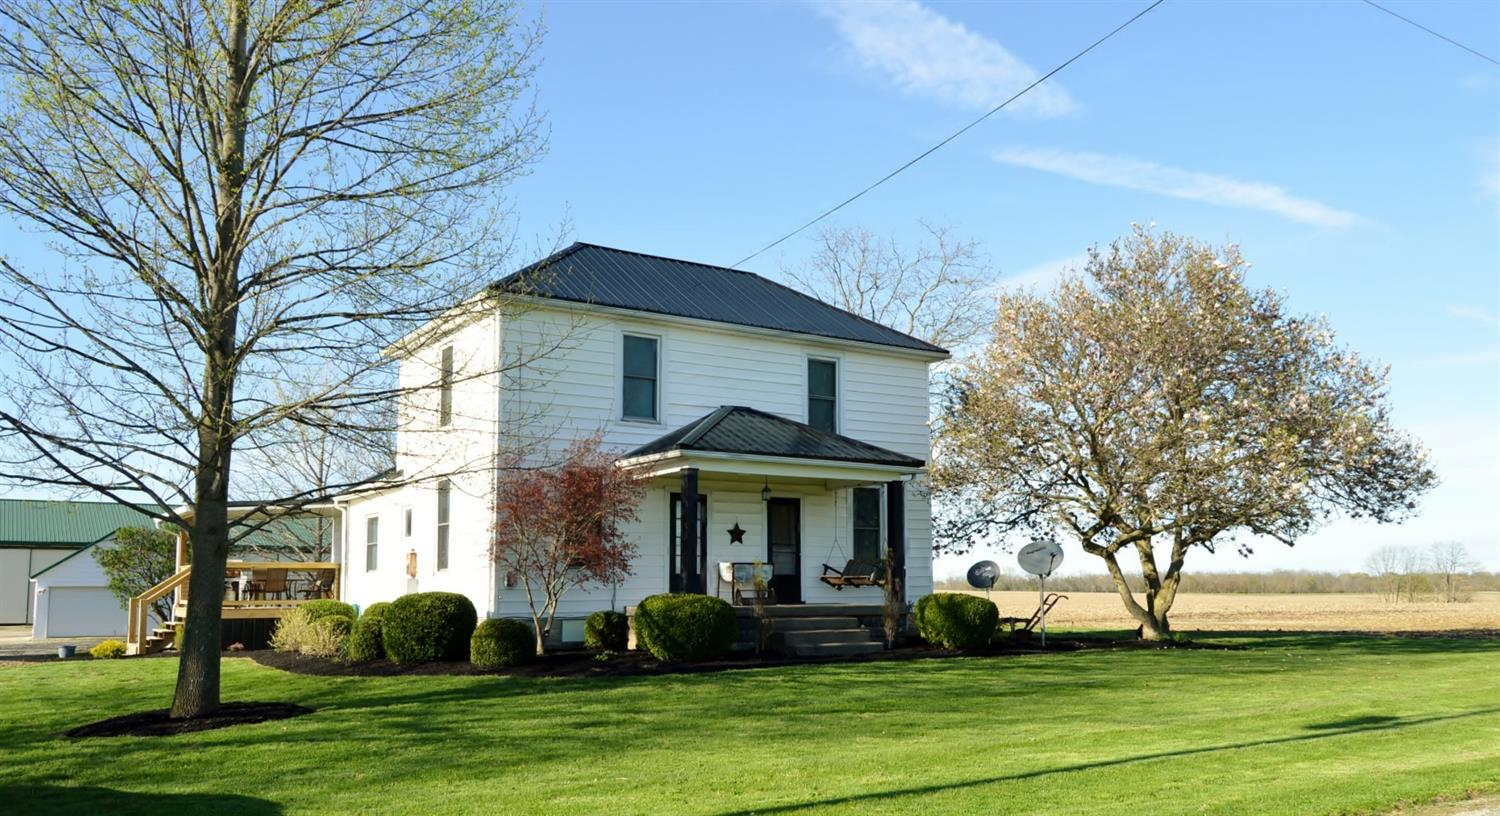 Photo 1 for 6600 Fairhaven Rd Preble County, OH 45003